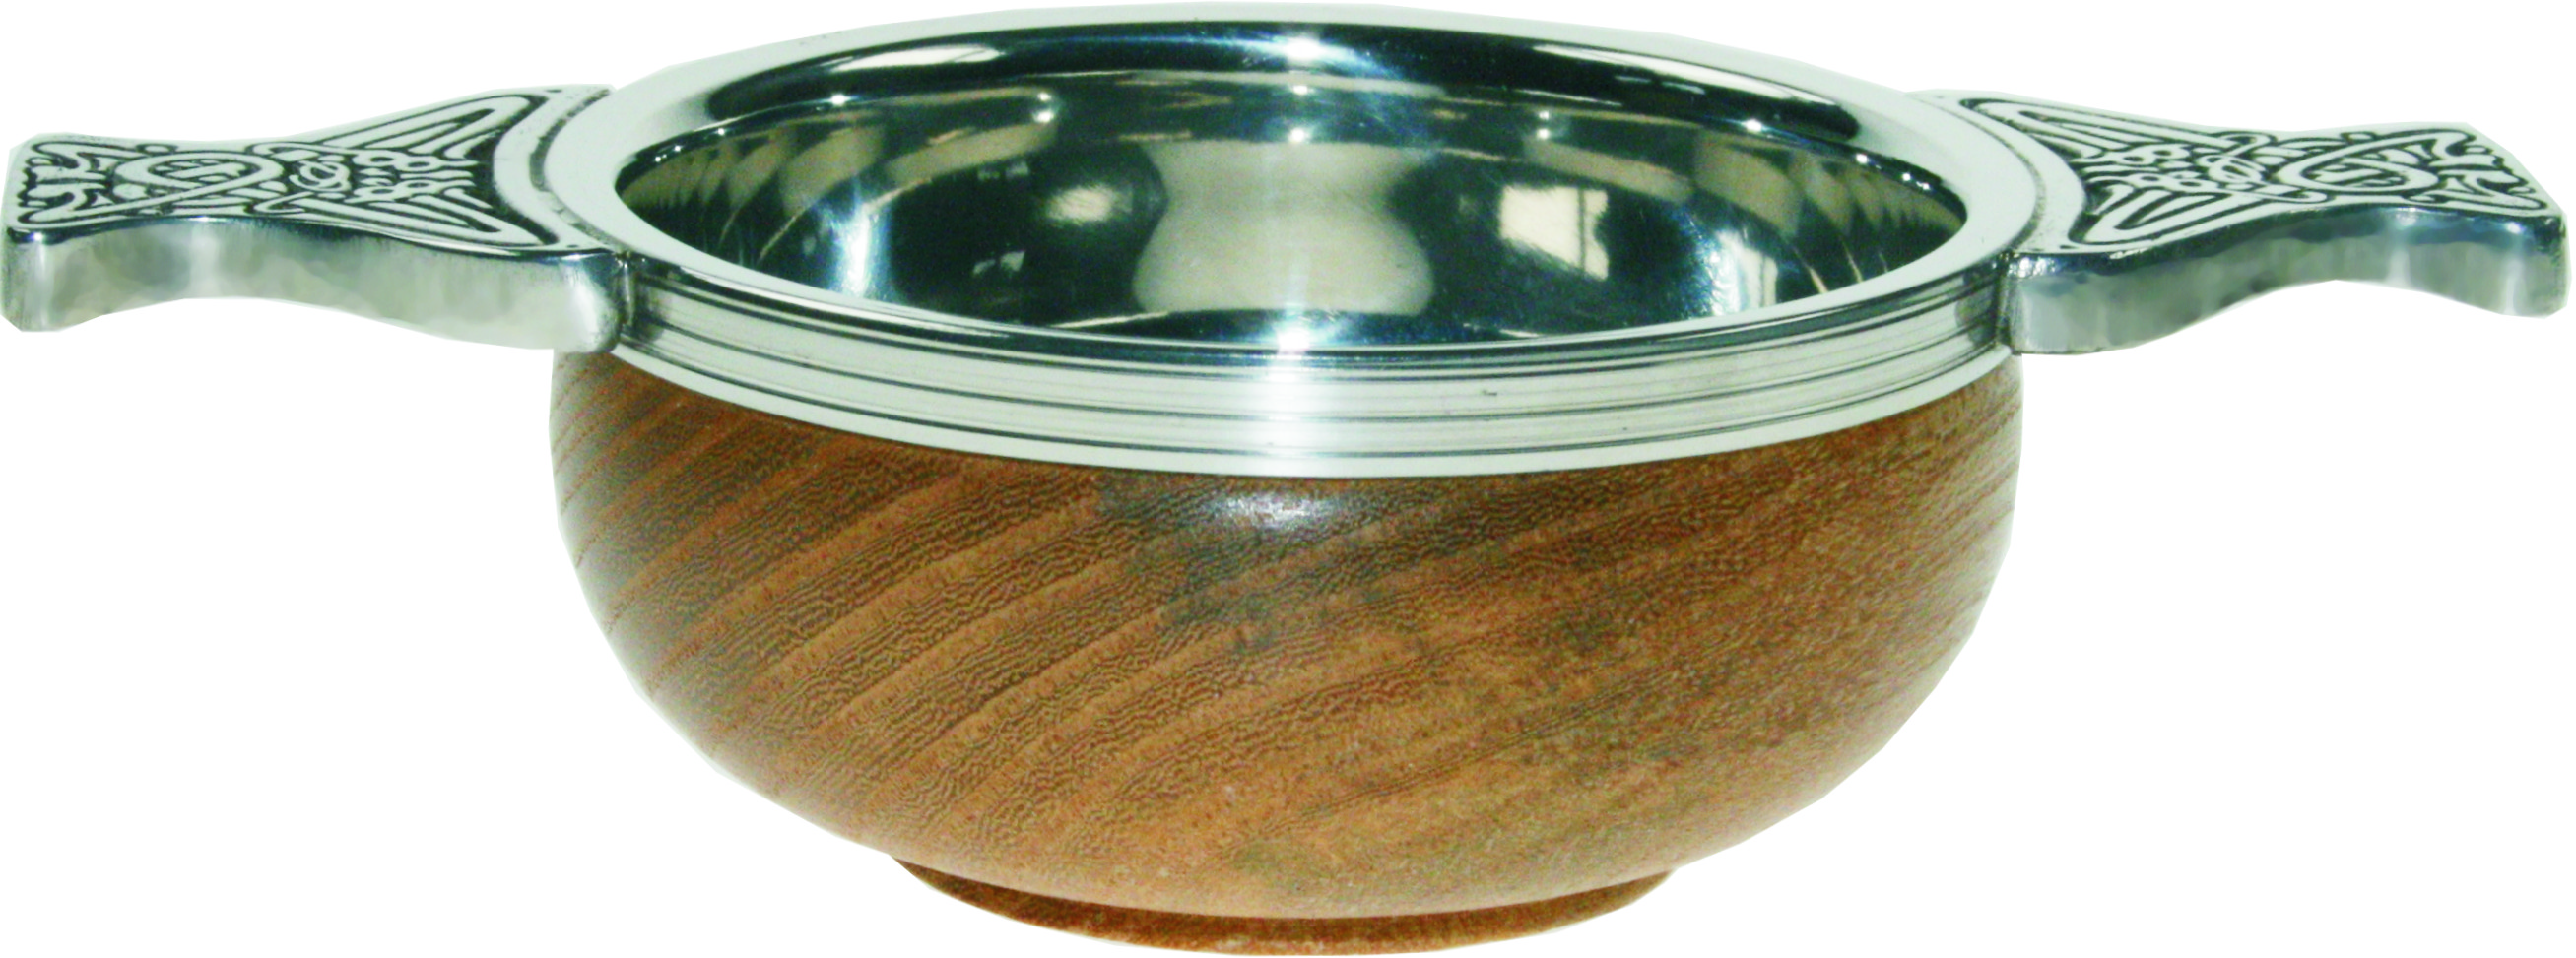 "Pewter and Wooden Base Quaich Bowl 9cm (3.5"")"